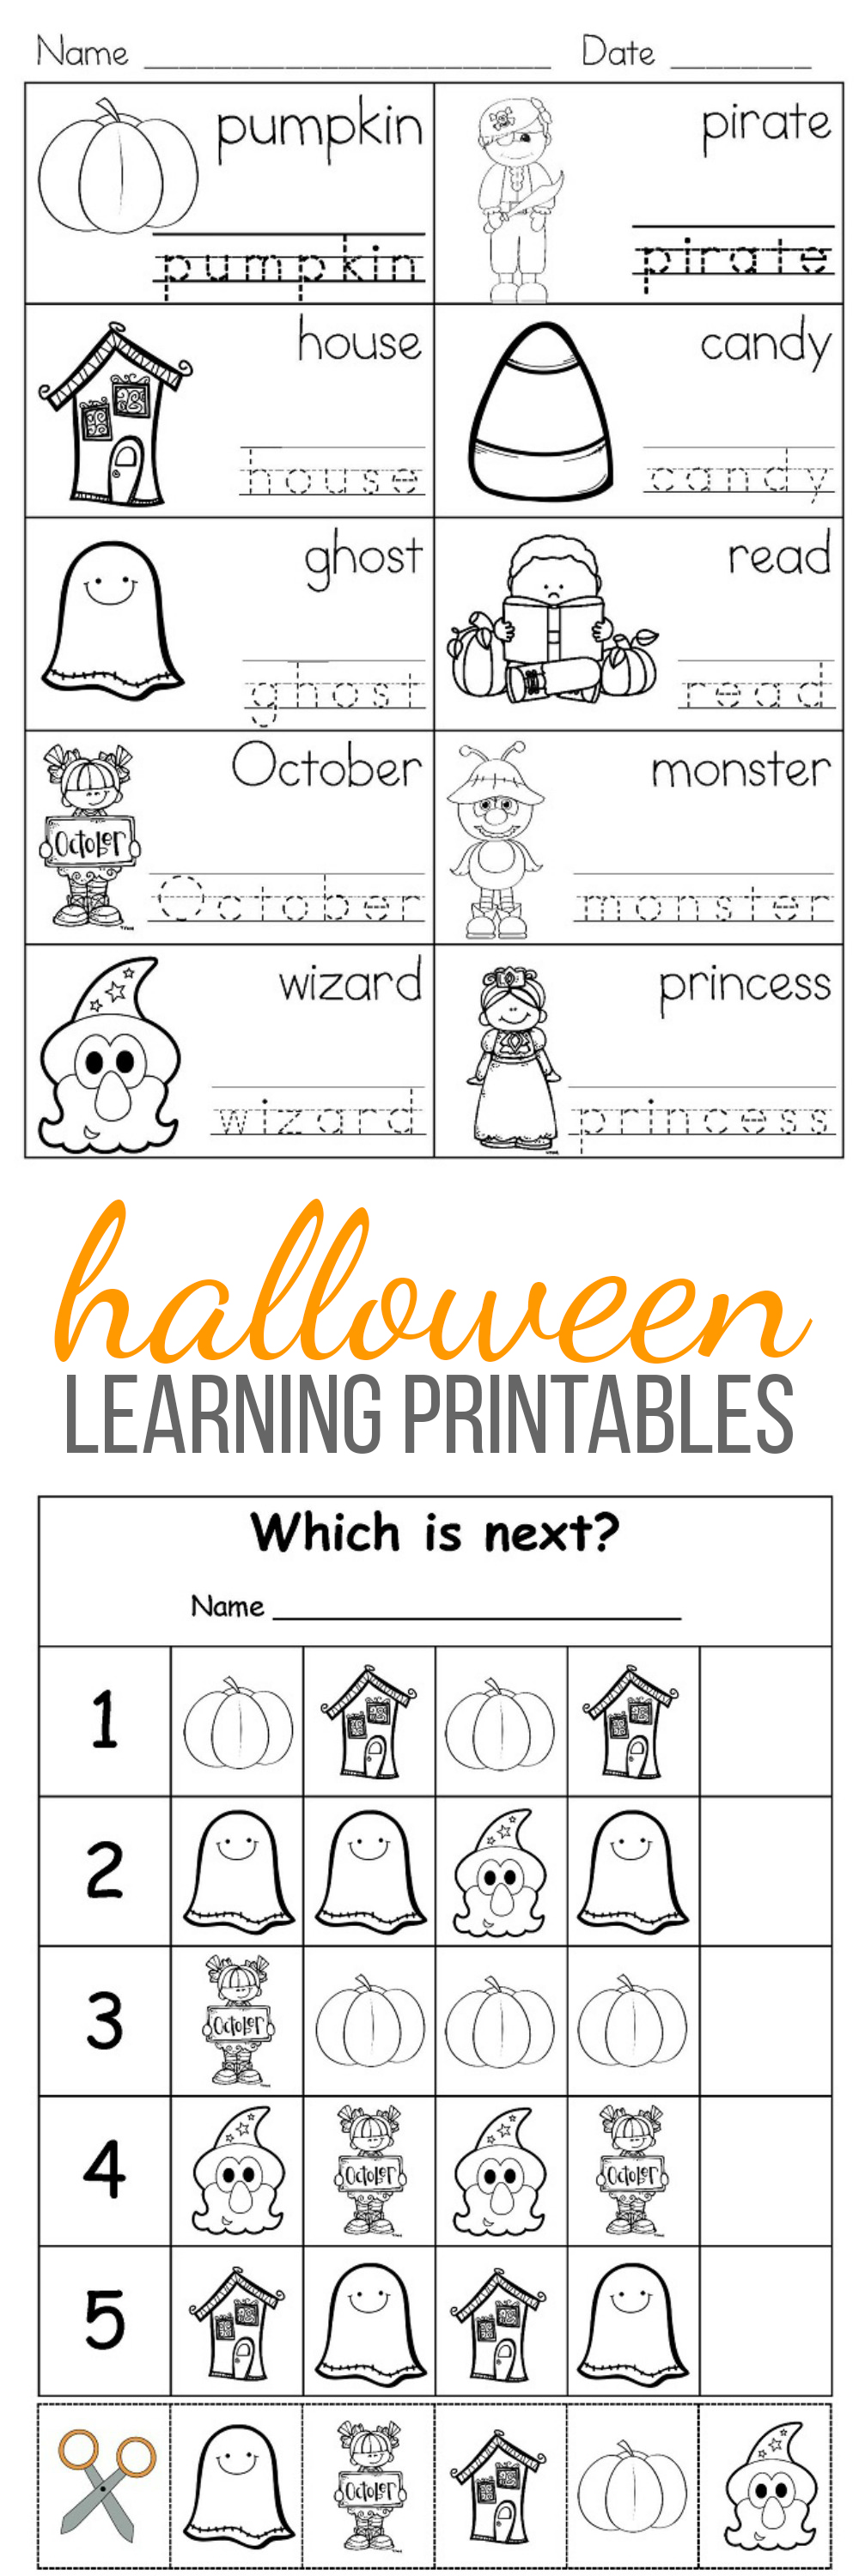 Halloween Free Learning Activities for Kids